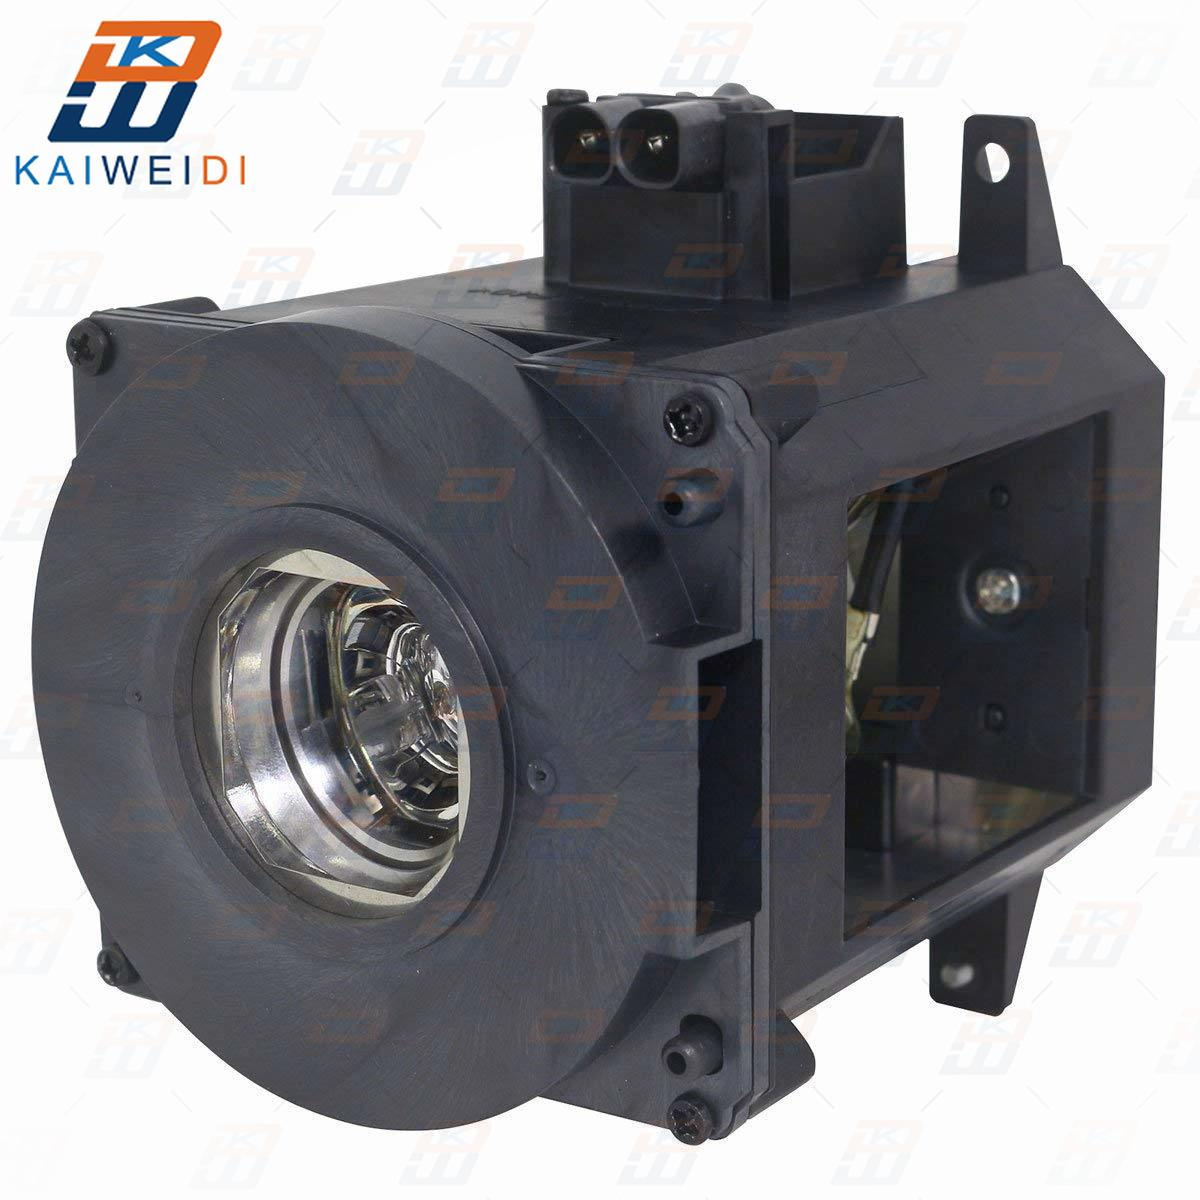 NP21LP 60003224 Projector Lamp For NEC NP-PA500U NP-PA500X NP-PA5520W NP-PA600X PA500U PA550W PA600X NP-PA550W PA500X Projectors